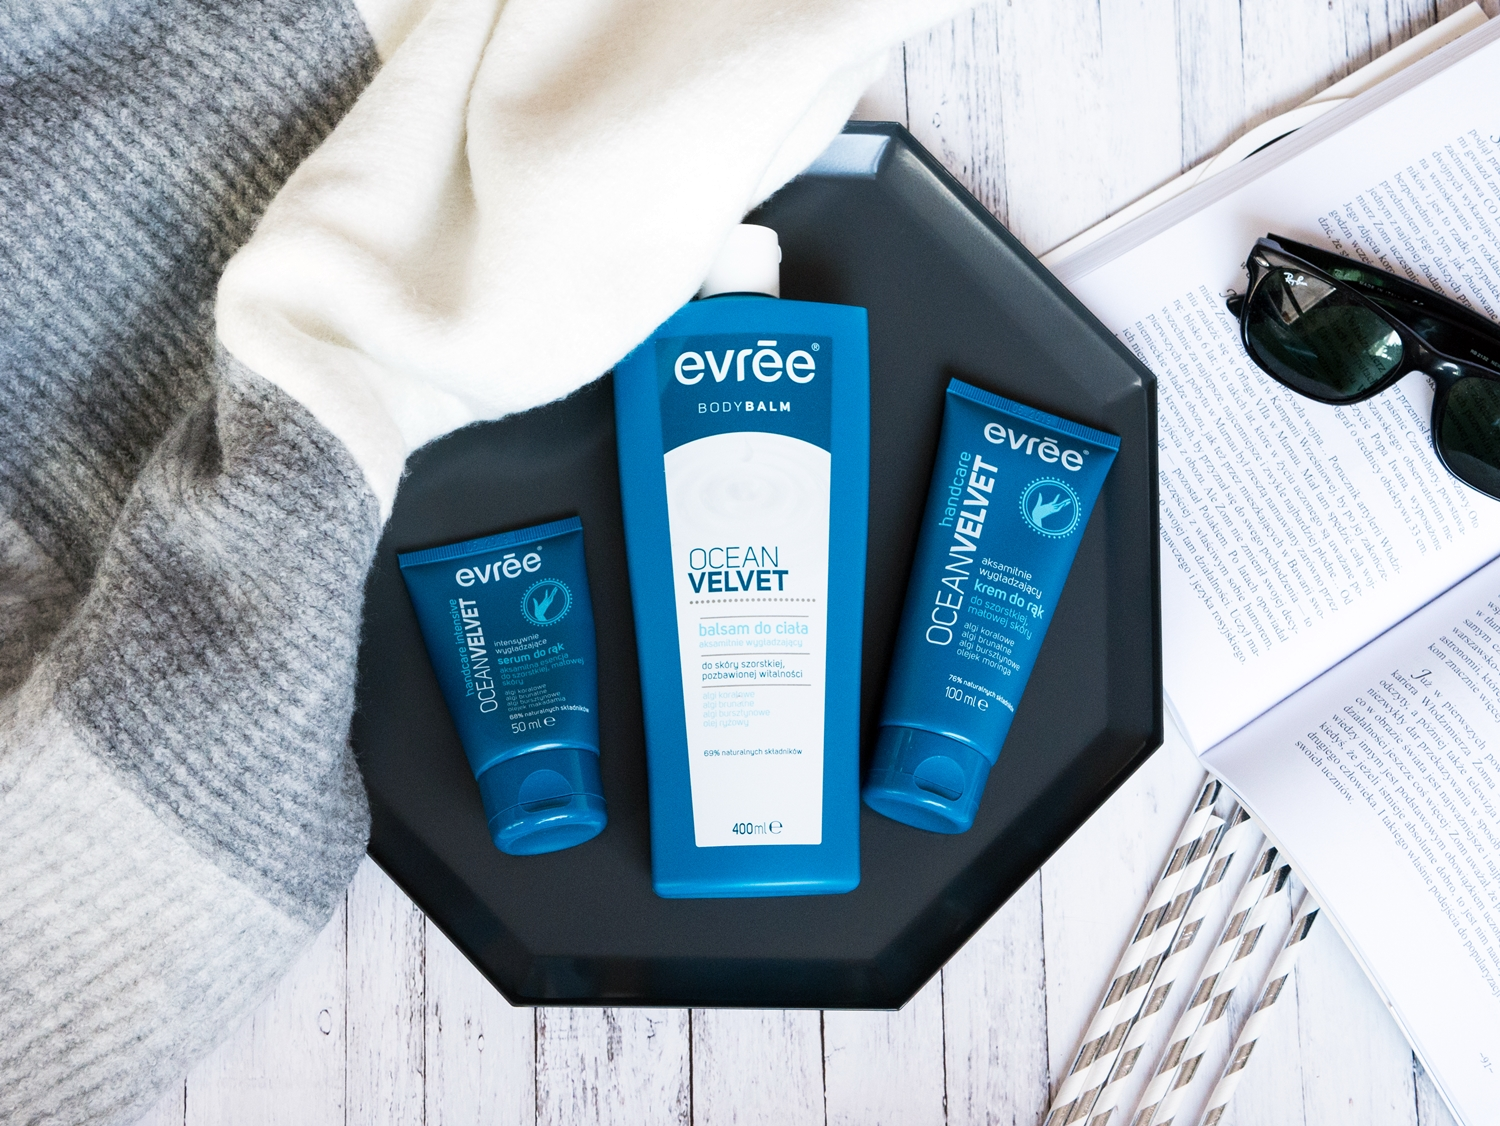 Evree Ocean Velvet balsam do ciała, serum i krem do dłoni